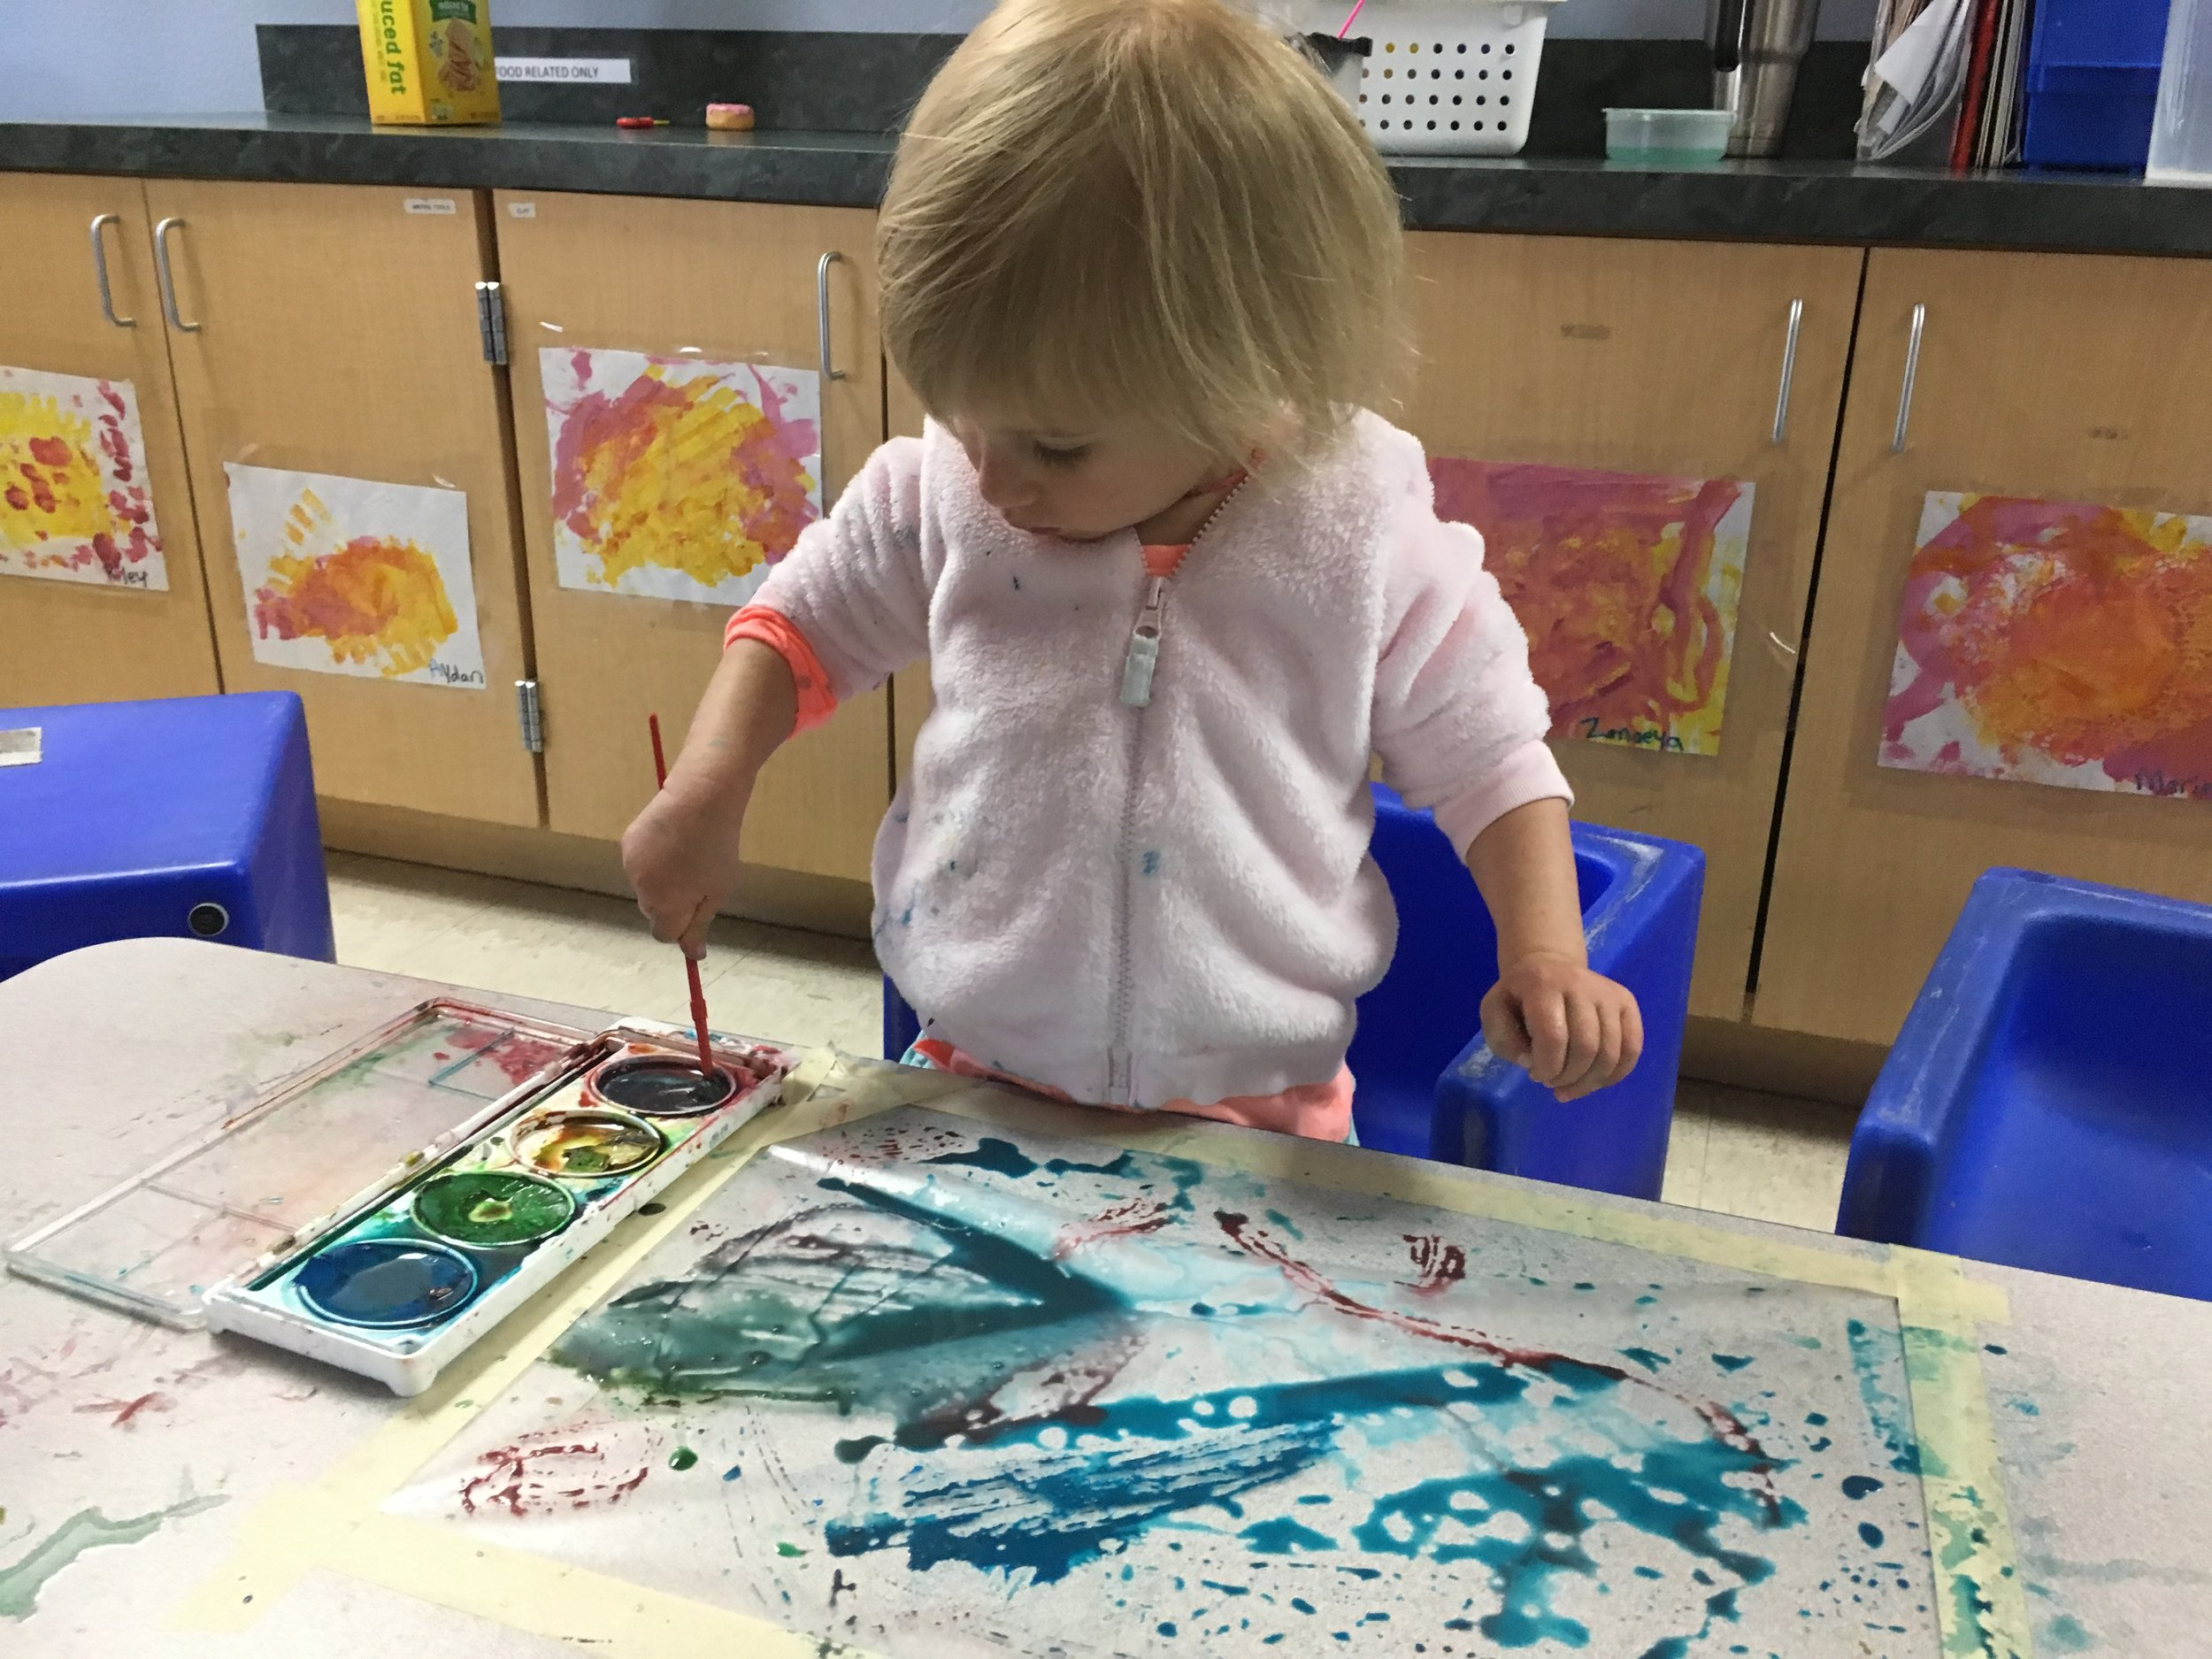 Riley enjoys painting contact paper with watercolors for a fun sensory activity in her toddler classroom.